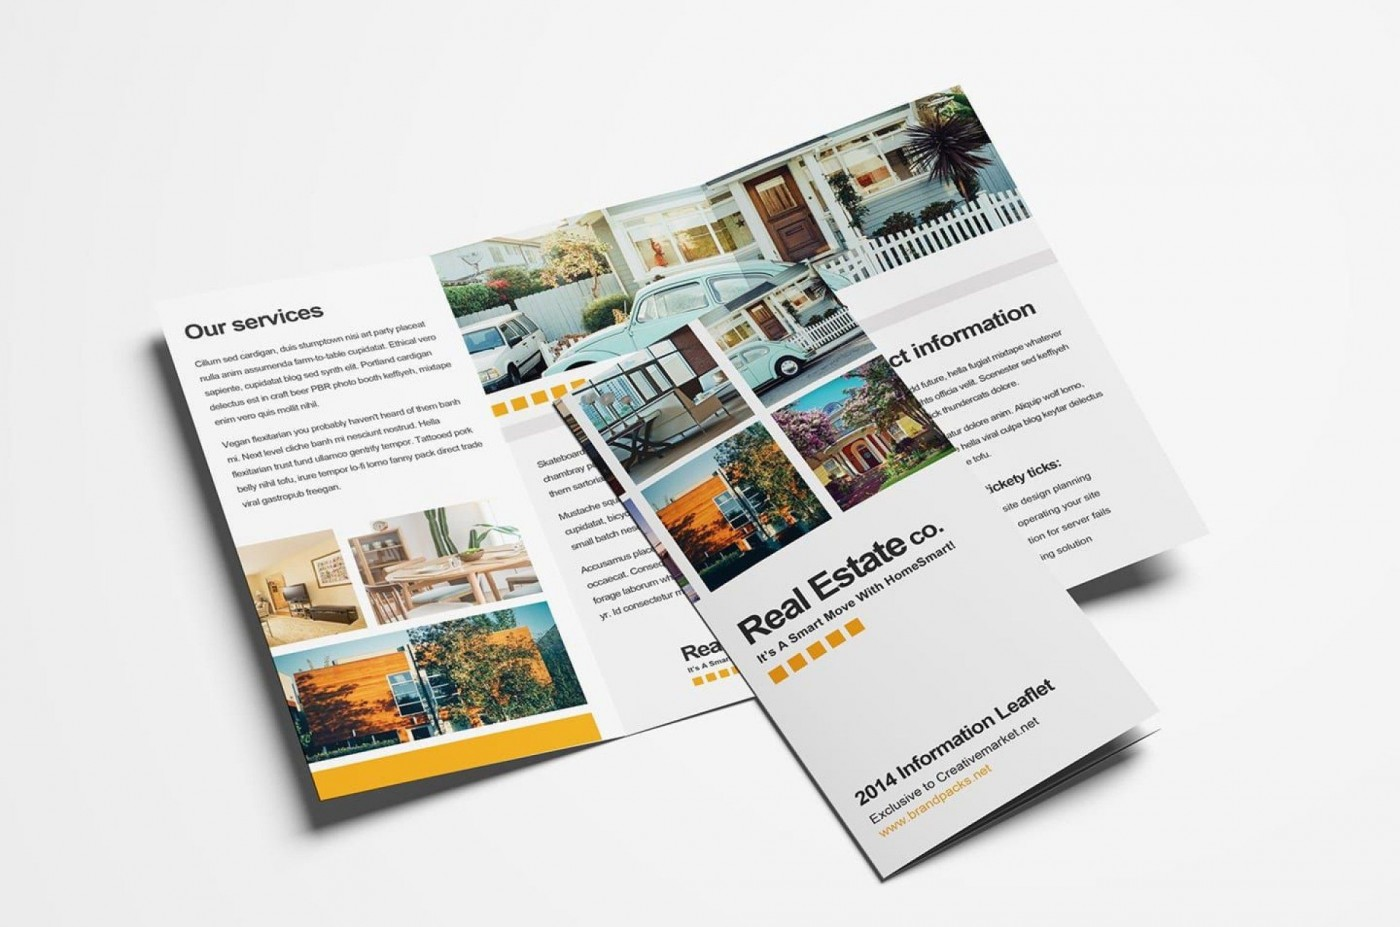 008 Awful Brochure Template Photoshop Cs6 Free Download Sample 1400